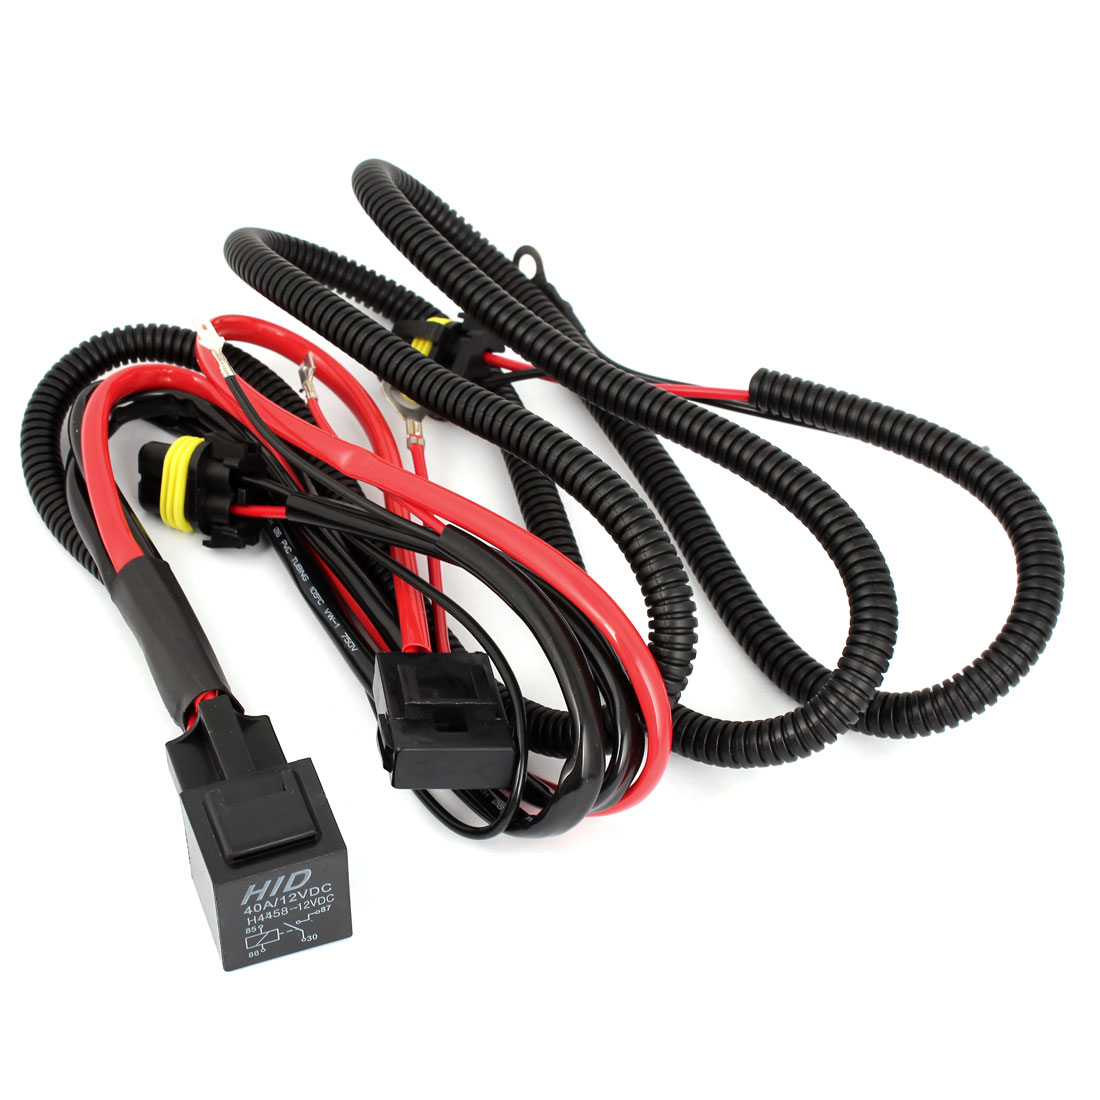 unique bargains relay wiring harness w fuse for hid xenon kit high beam h1 40a 12v [ 1100 x 1100 Pixel ]